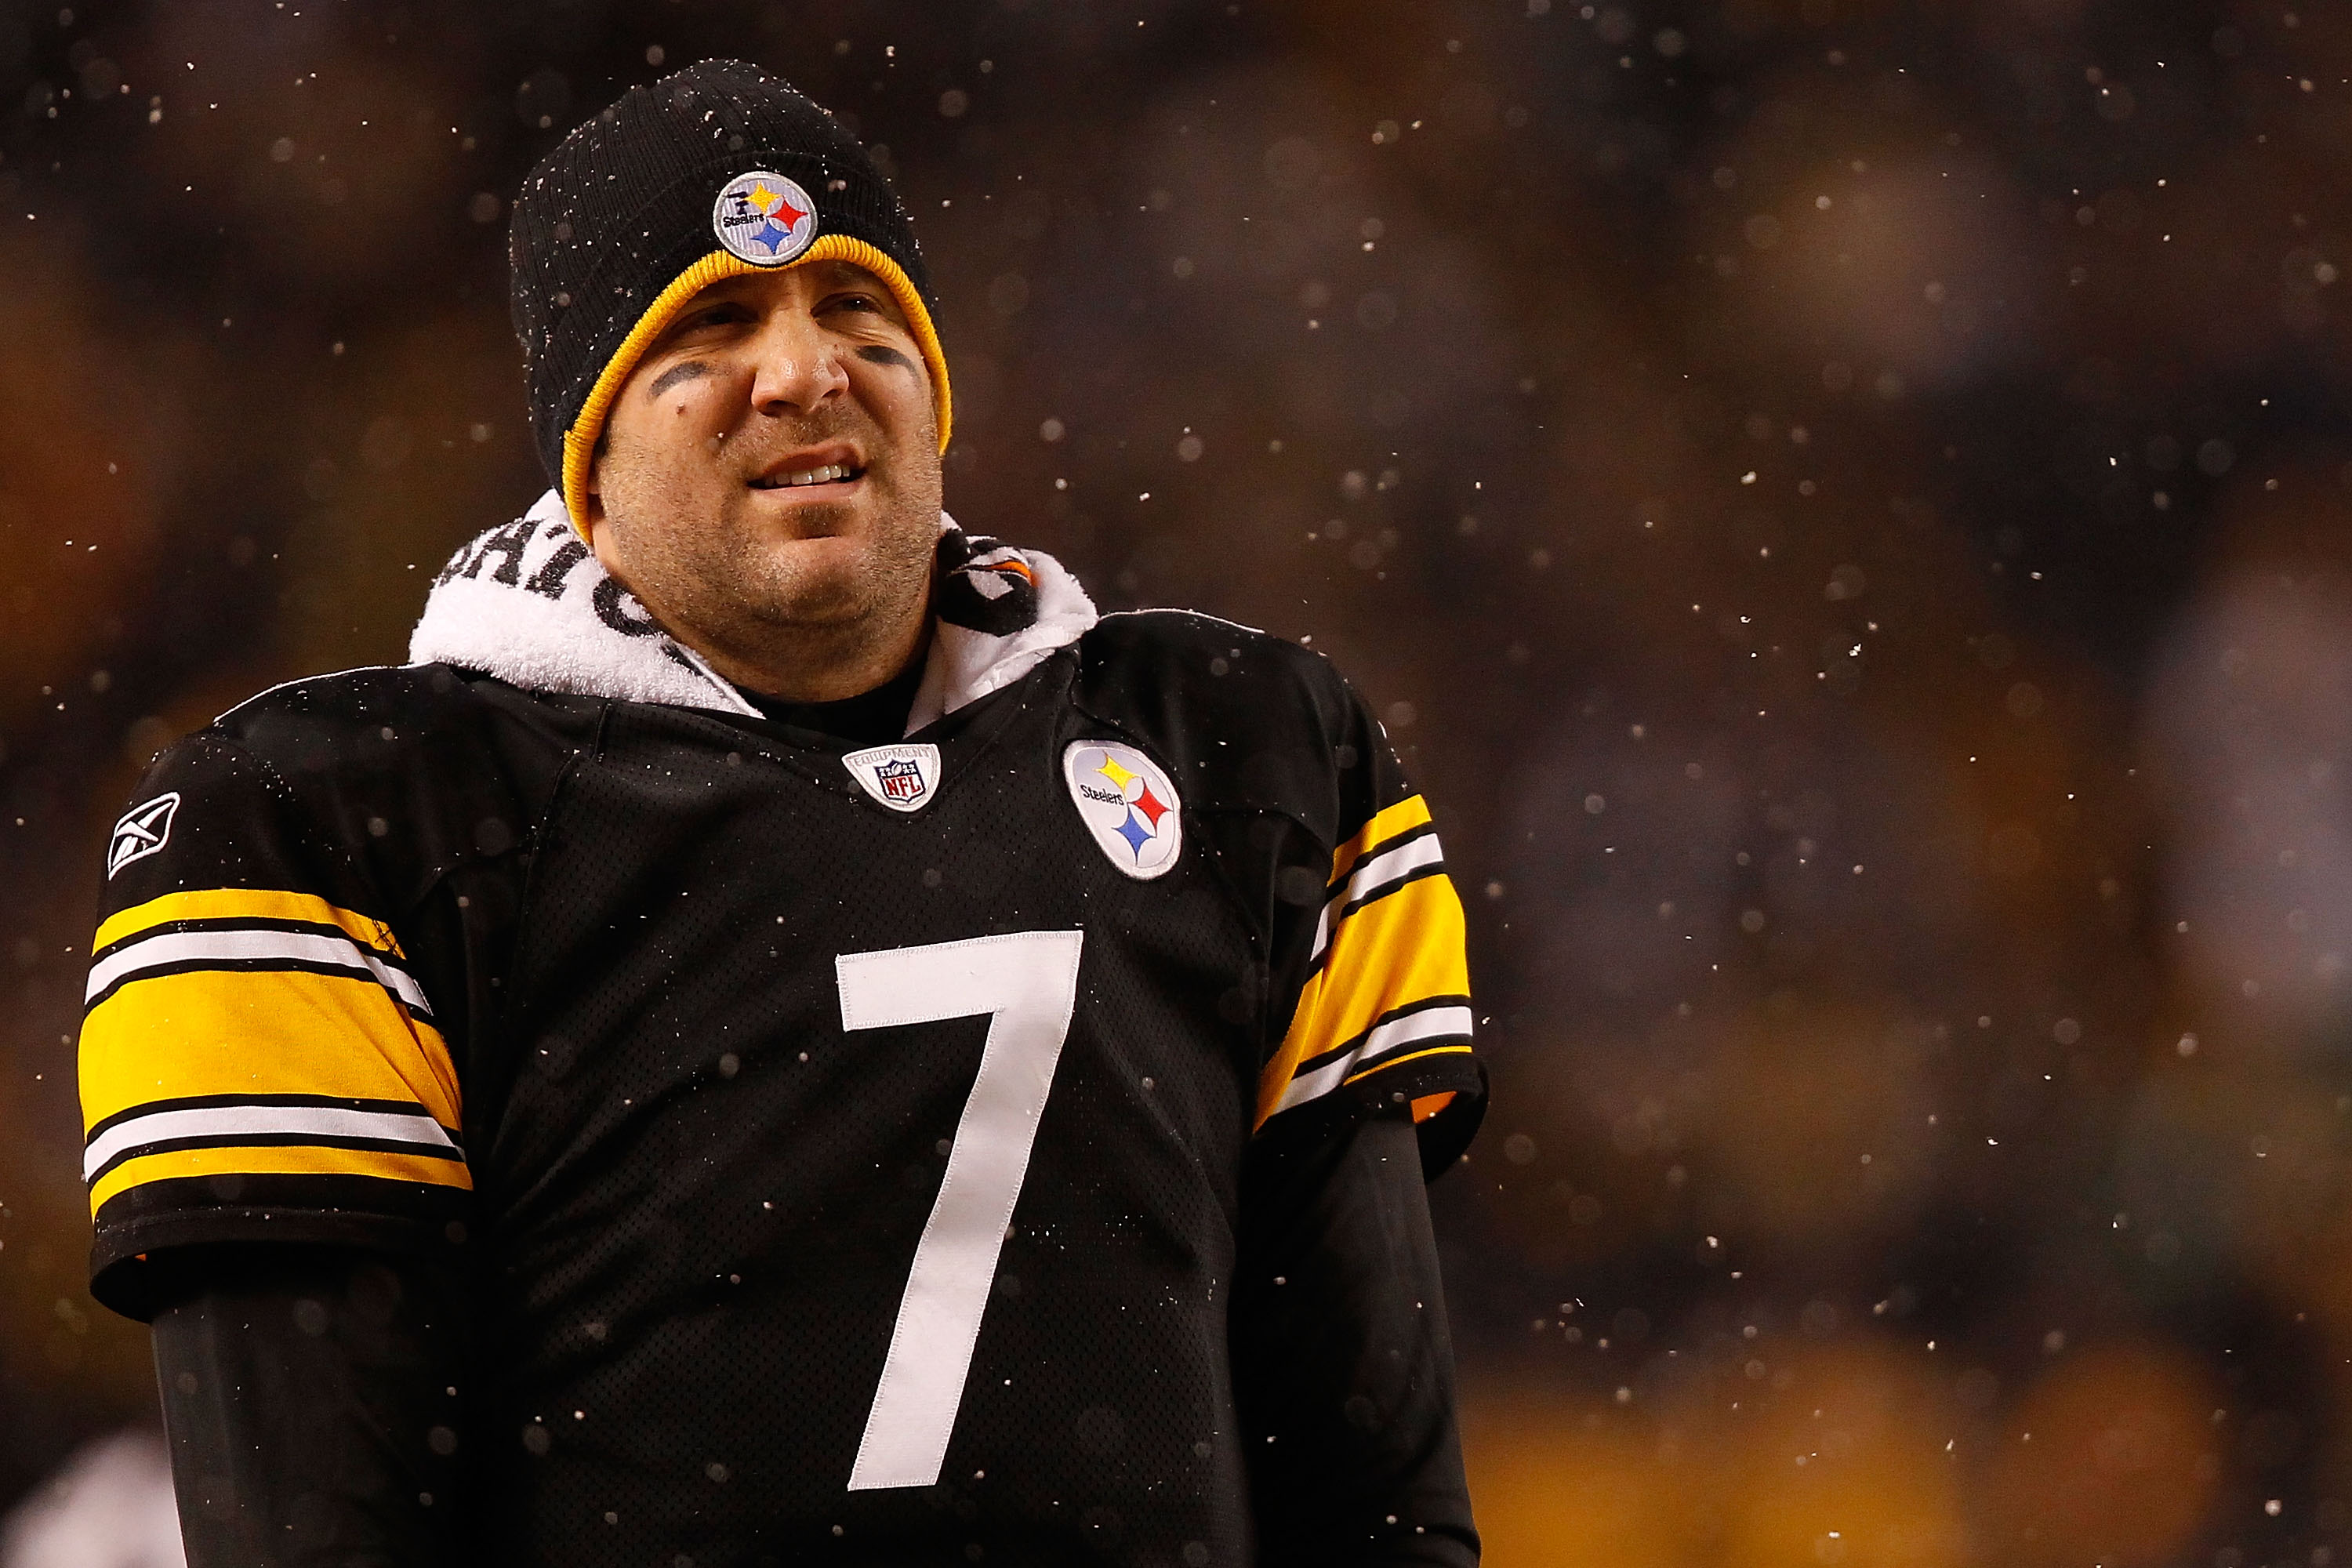 PITTSBURGH - DECEMBER 19:  Ben Roethlisberger #7 of the Pittsburgh Steelers watches his team play against the New York Jets during the game on December 19, 2010 at Heinz Field in Pittsburgh, Pennsylvania.  (Photo by Jared Wickerham/Getty Images)